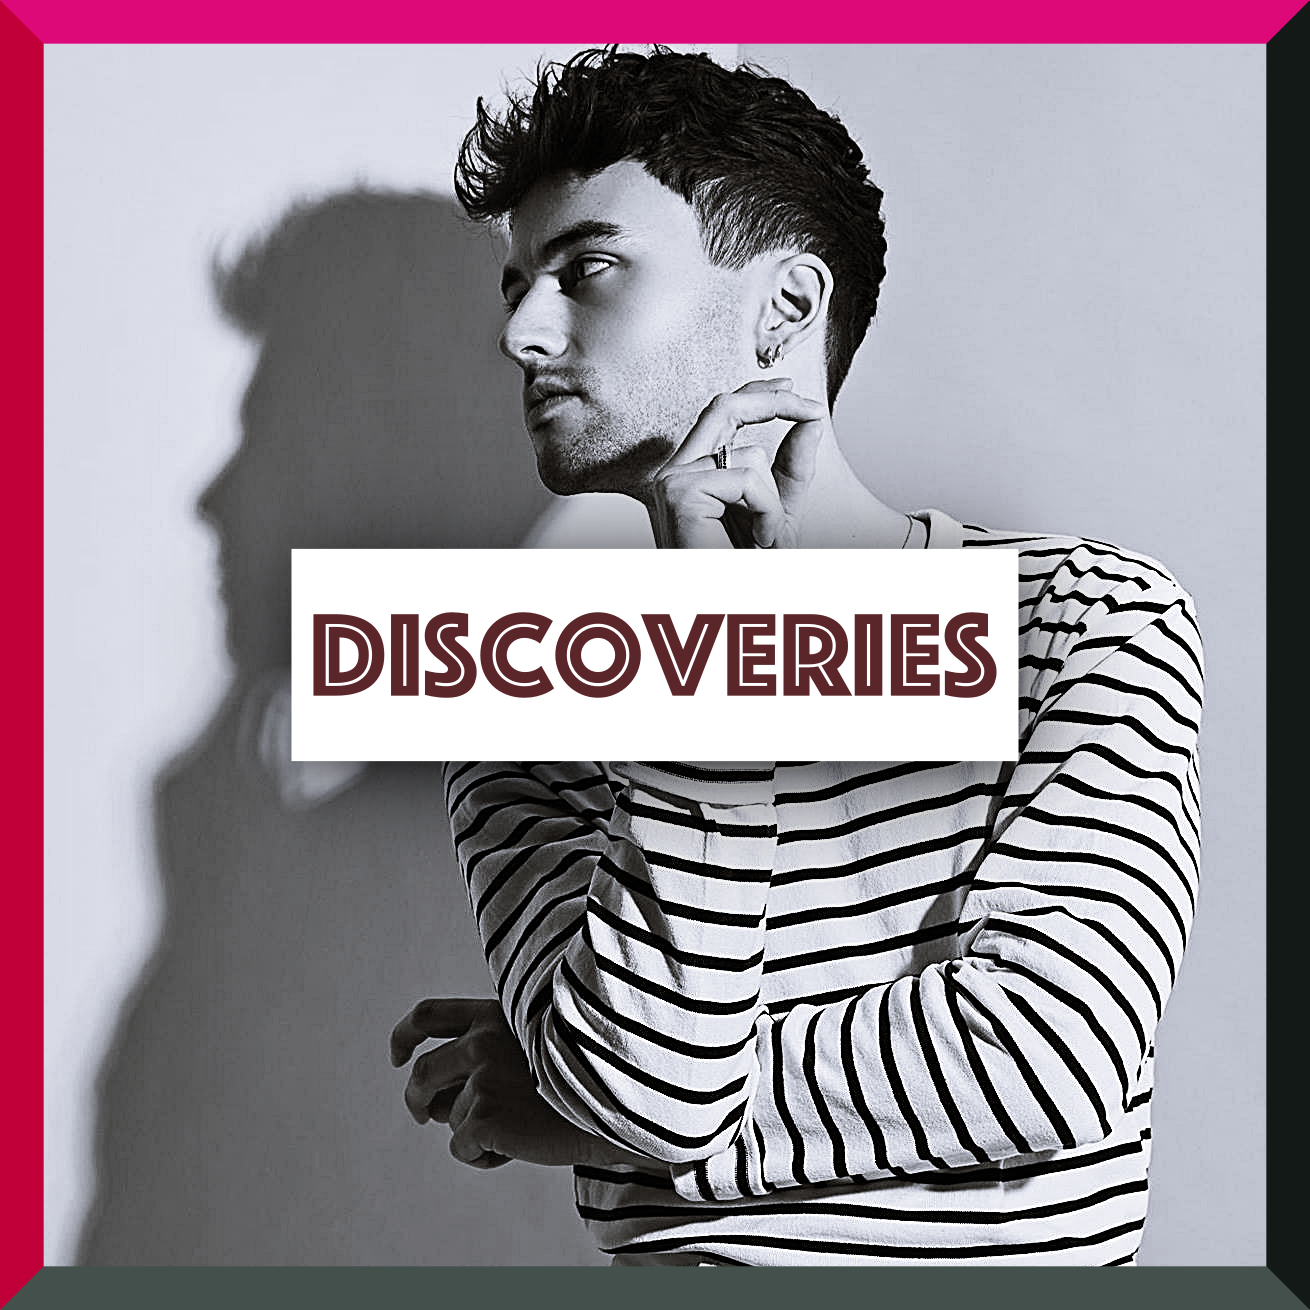 Discoveries, march 2019 - March is always a month full of new flavors, mostly because summer is coming and we all know that most hit songs are crested around this time. Below, we listed few discoveries that we think deserve your attention.